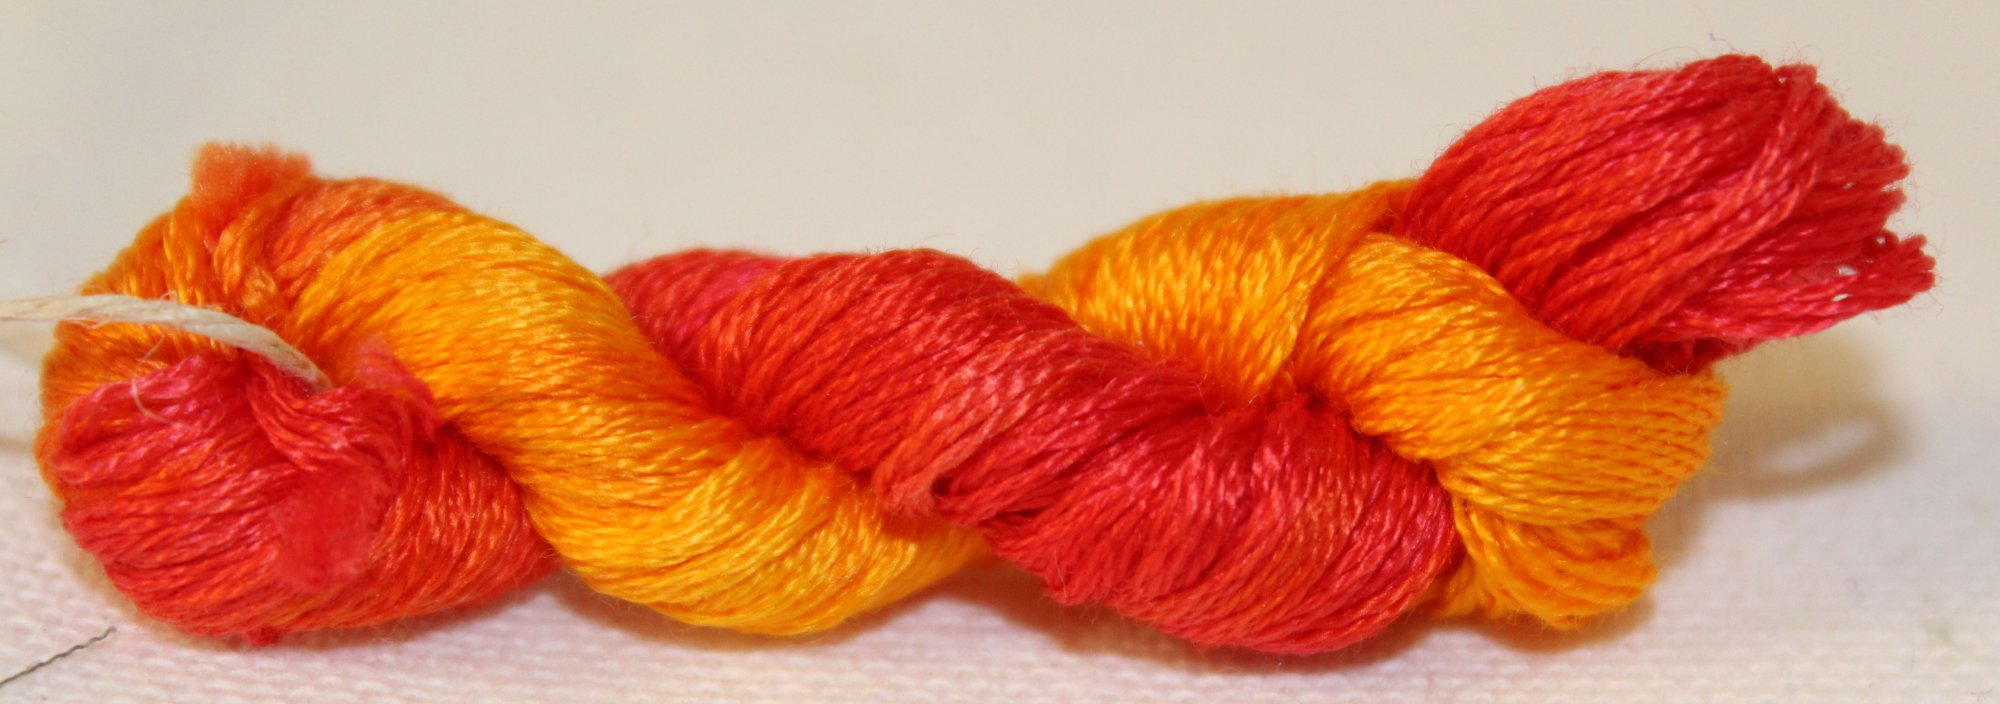 Blaze- Hand-Dyed Embroidery Floss